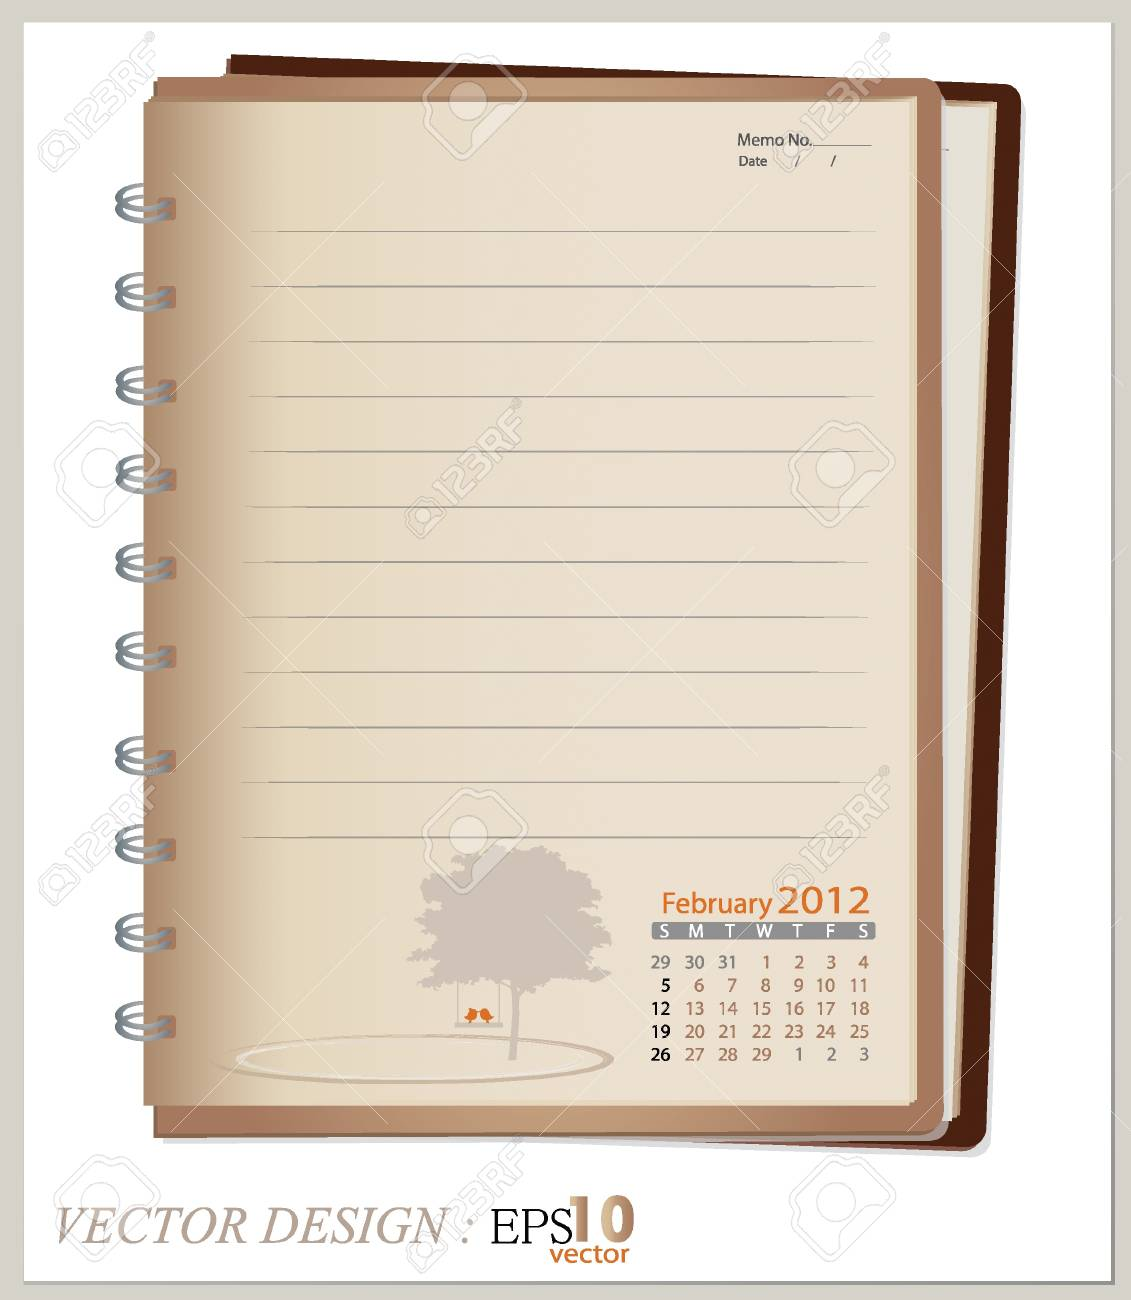 Simple 2012 calendar notebook, February. All elements are layered separately. Easy editable. Stock Vector - 14178220